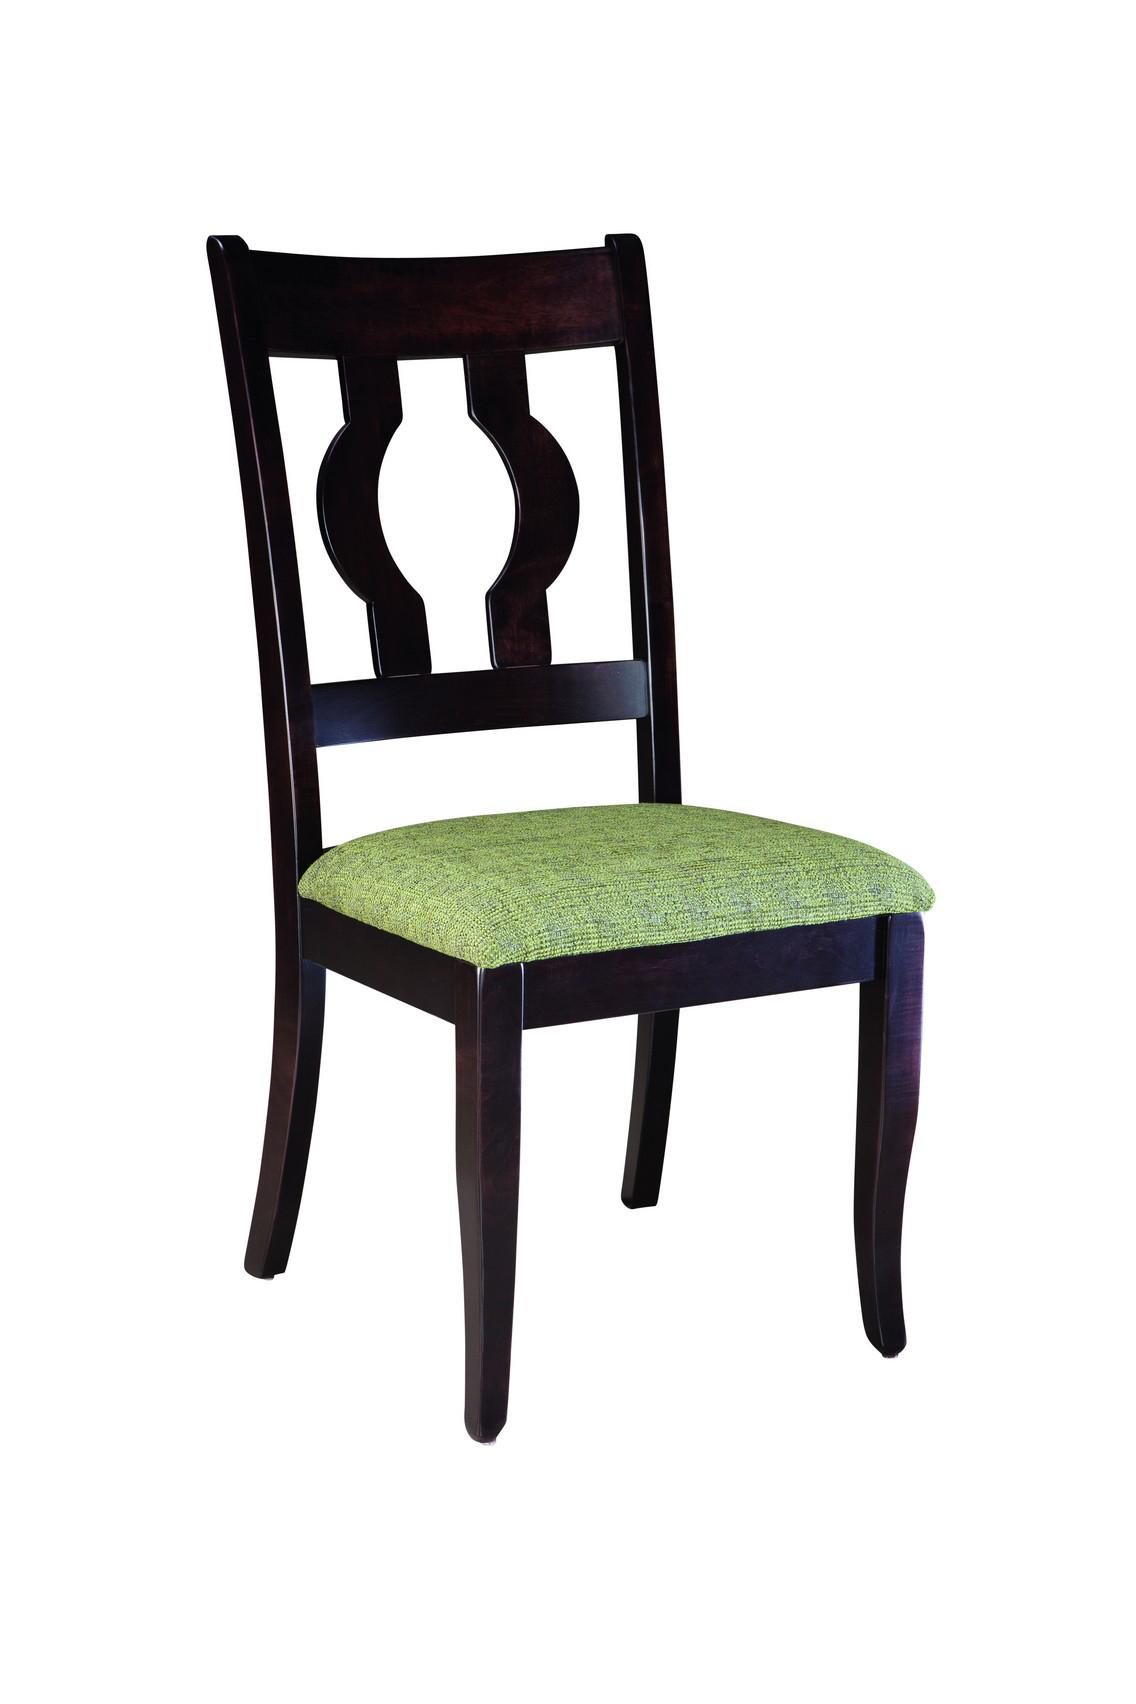 Single Metro Customizable Side Chair by Palettes by Winesburg at Dinette Depot